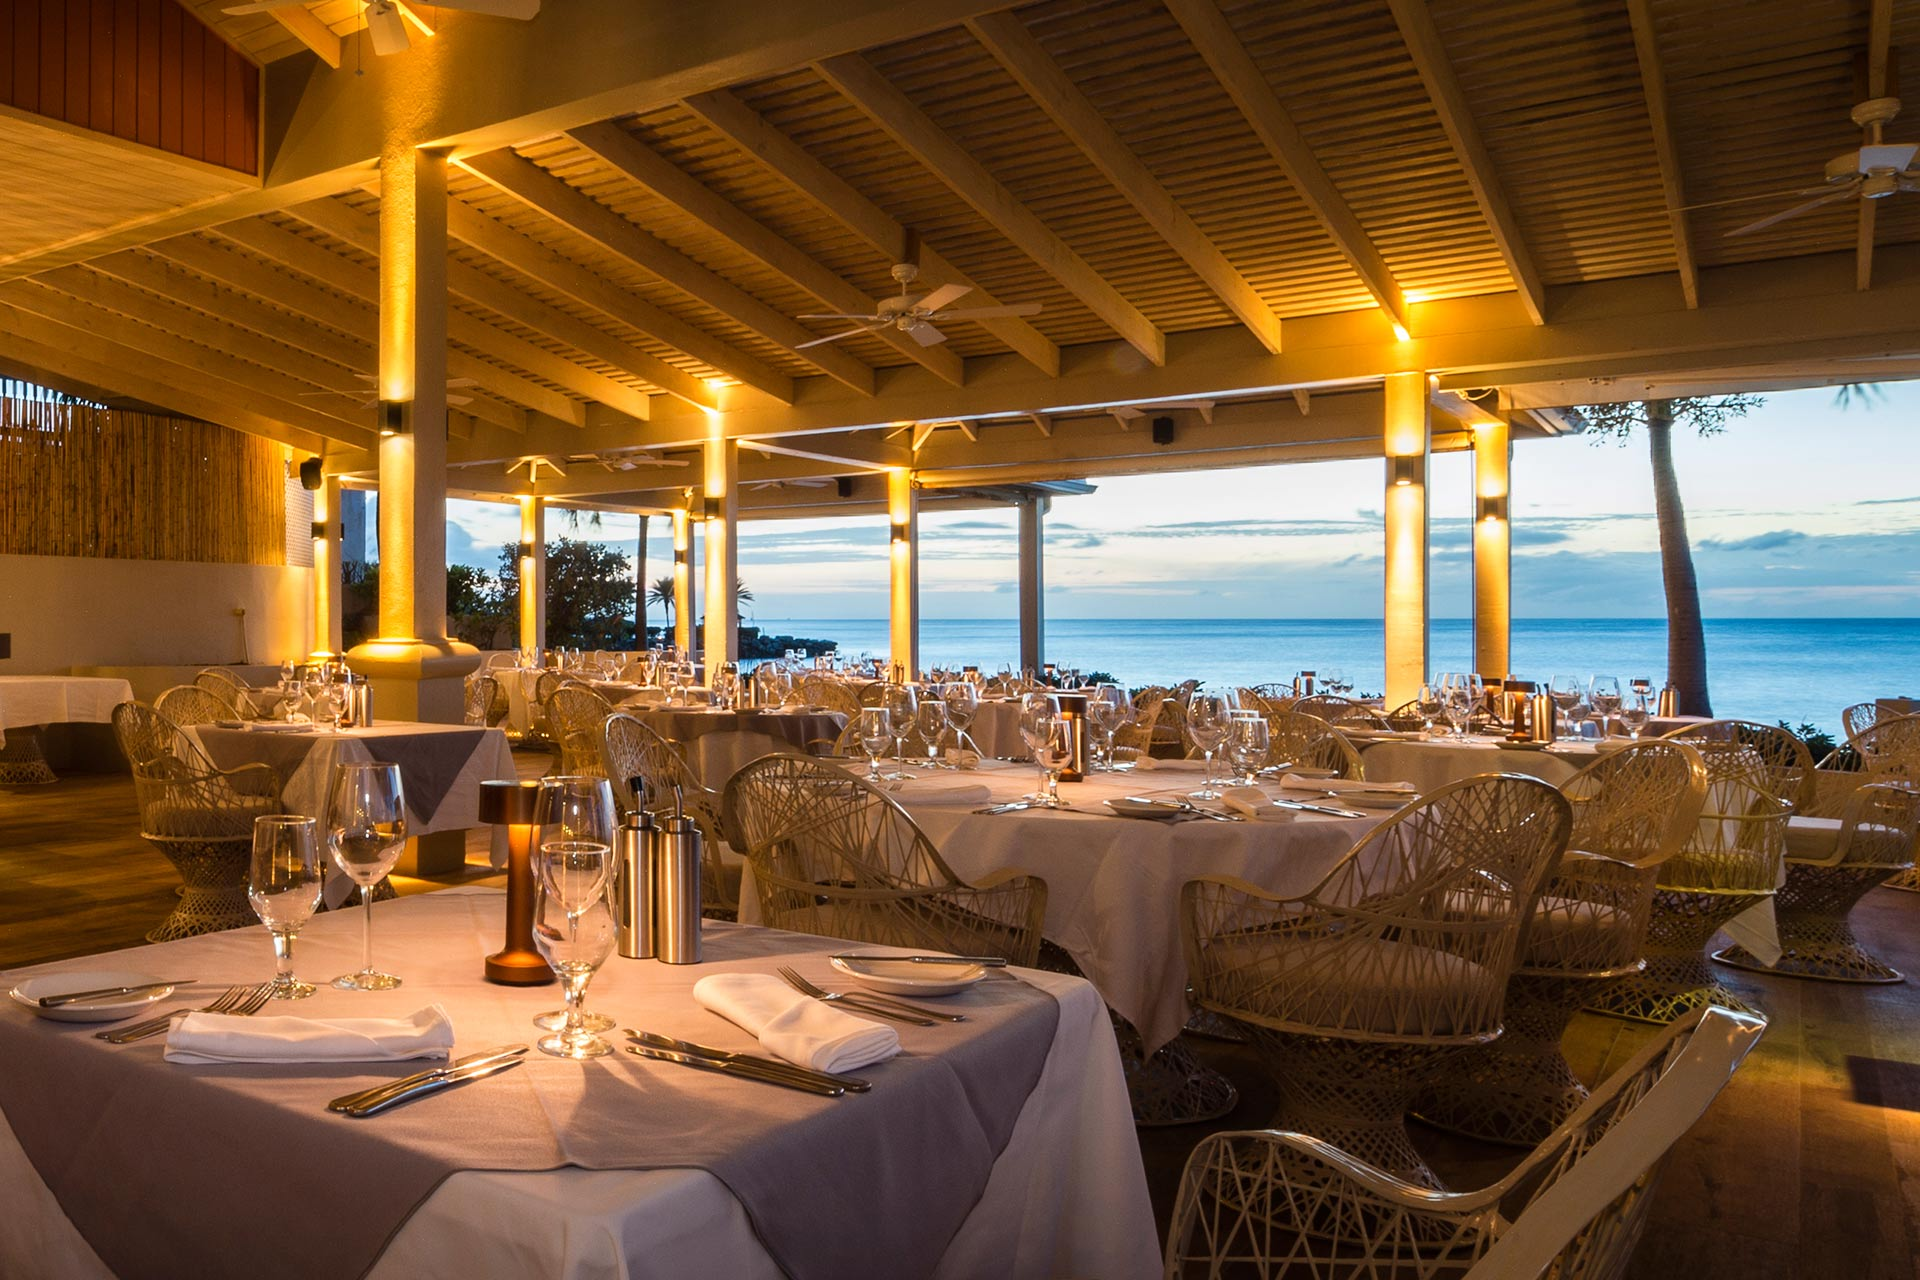 The Cove Restaurant at Blue Waters Resort & Spa in Antigua.